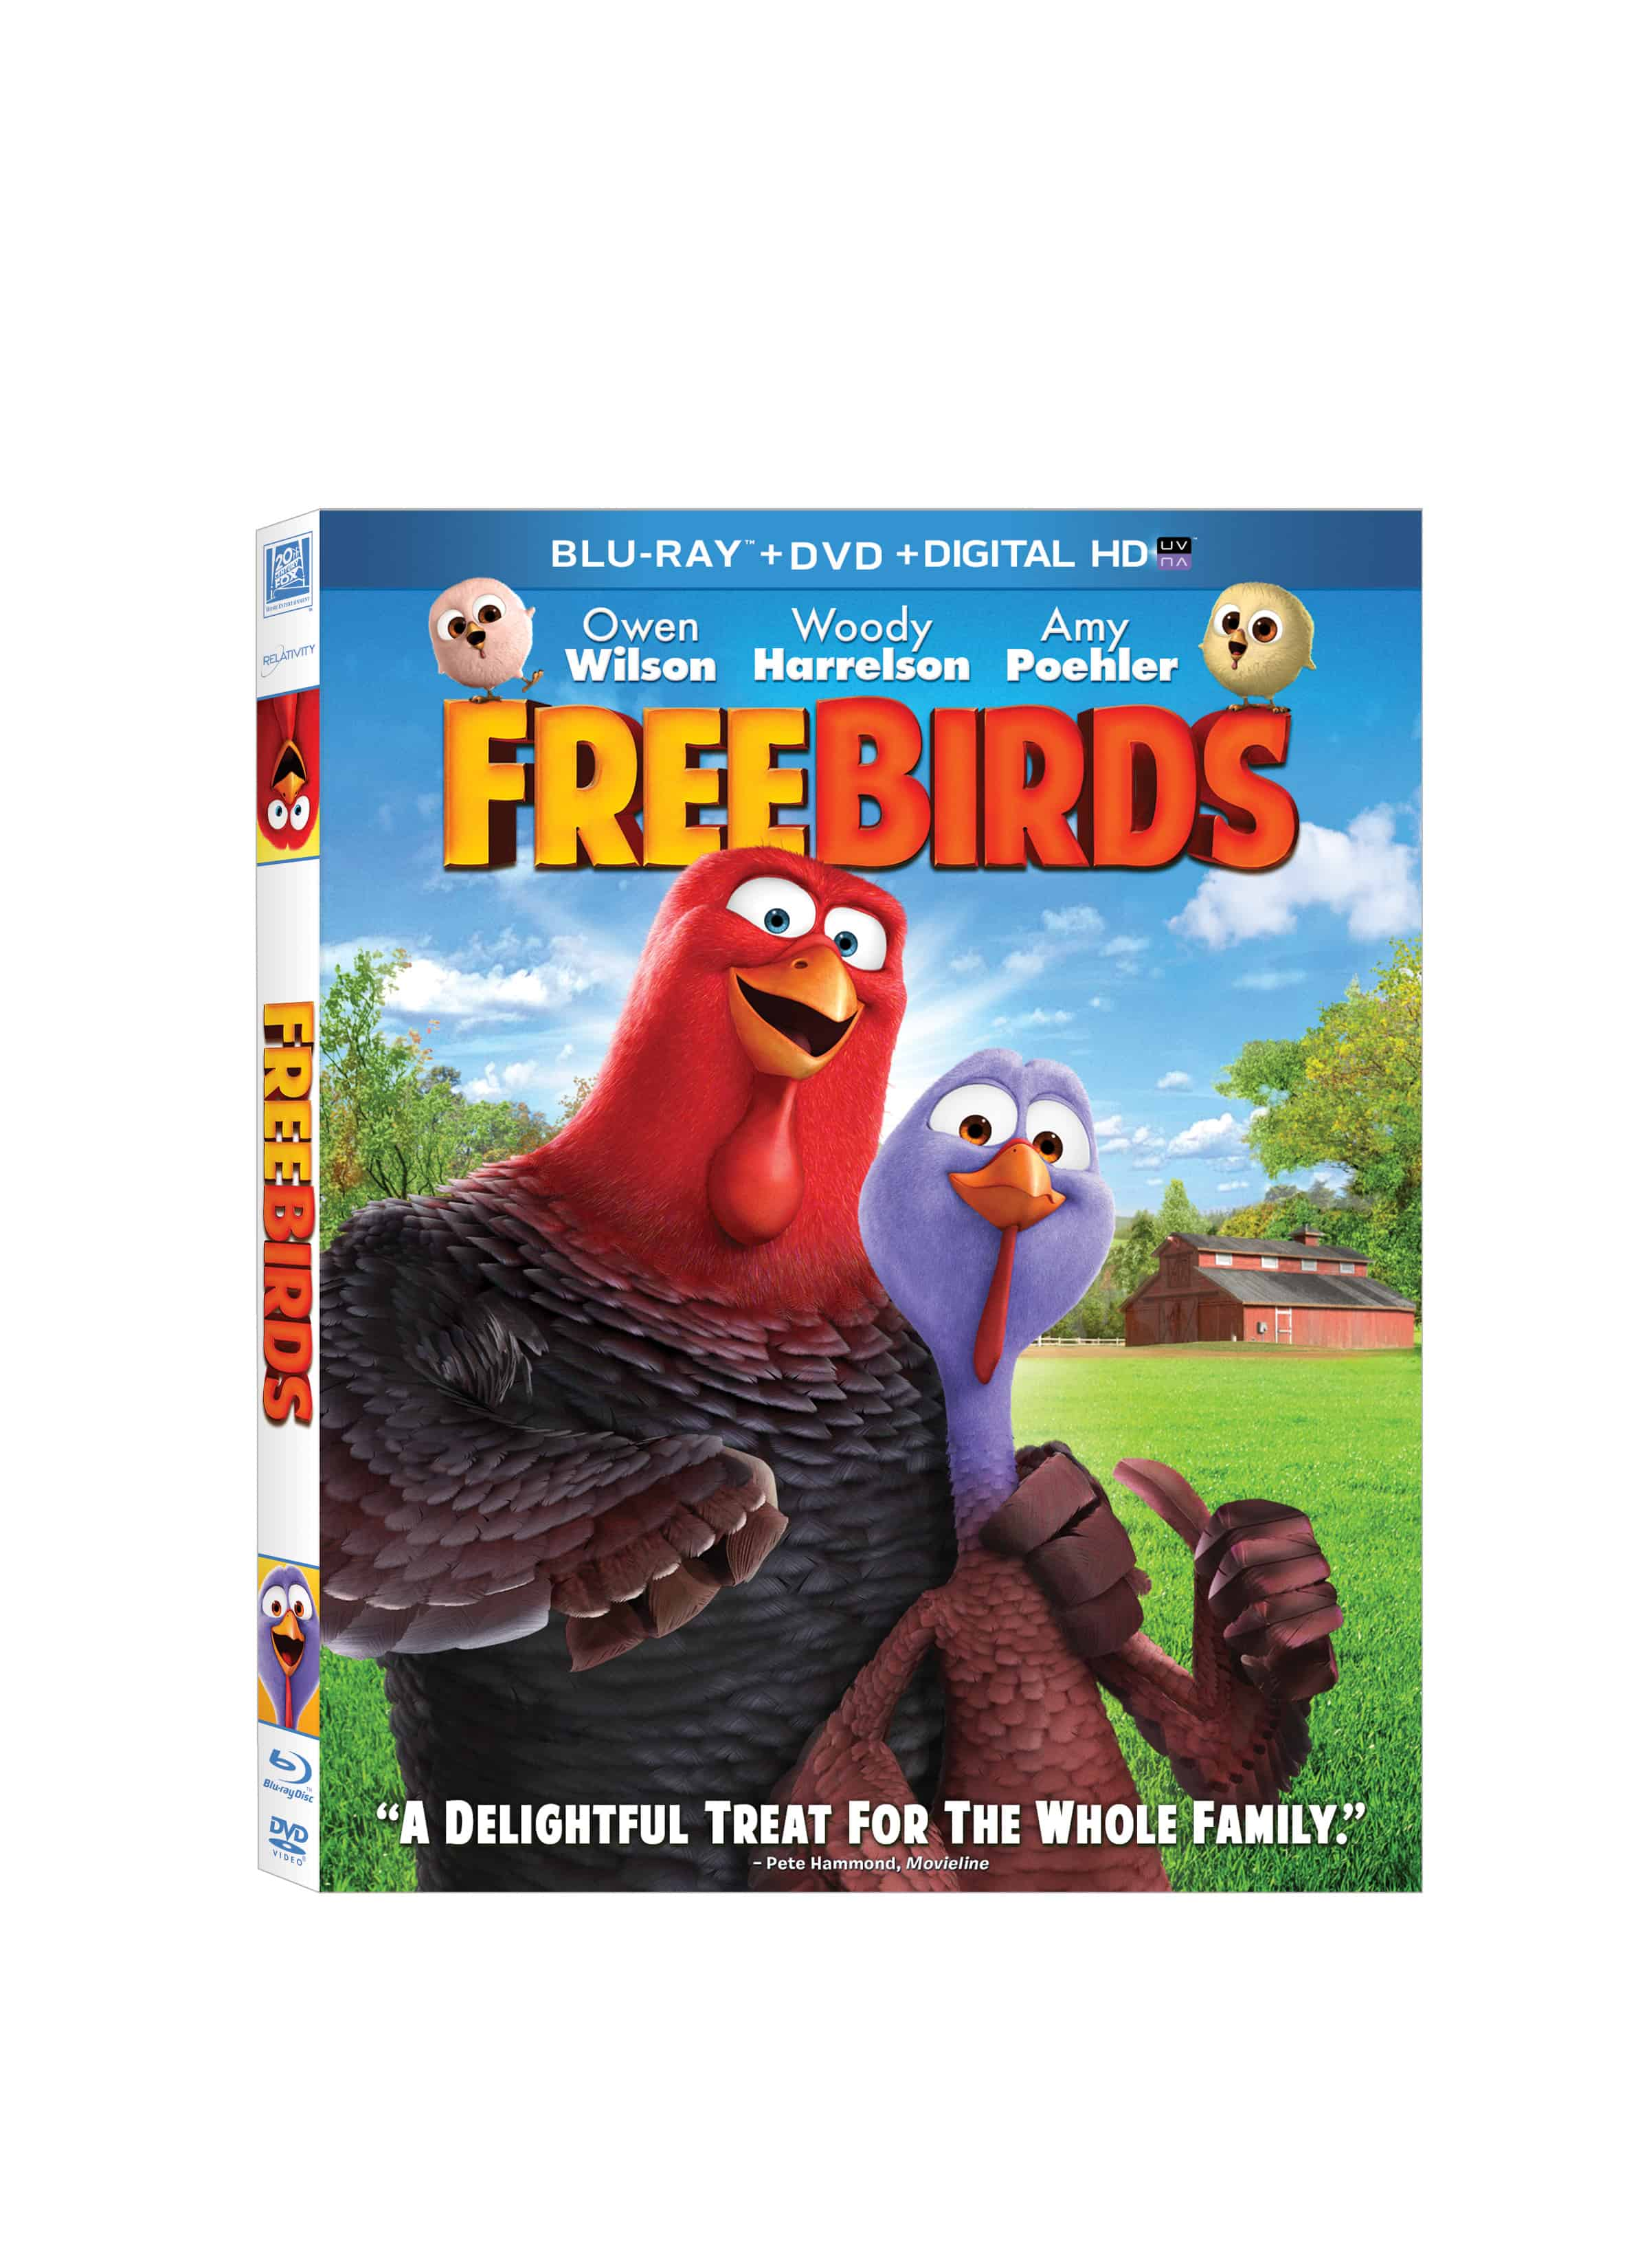 Free Birds on DVD #FreeBirdsDVD